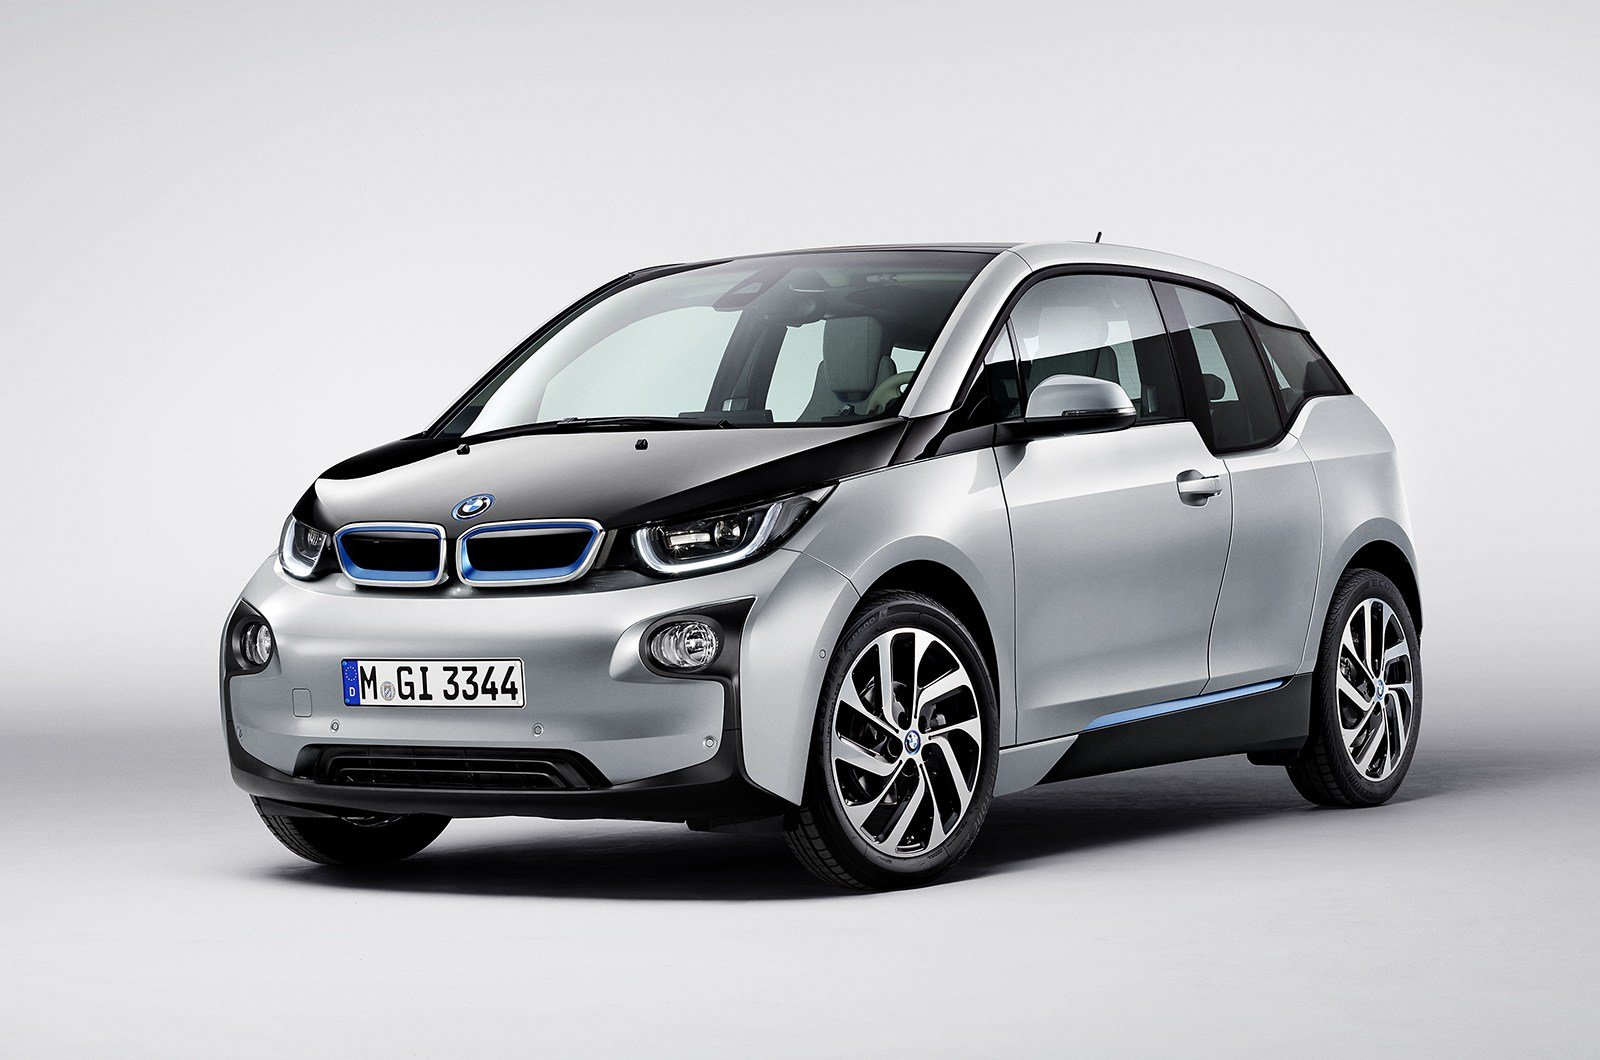 Latest New Bmw I3 Coupe Photo Gallery Car Gallery Premium Free Download